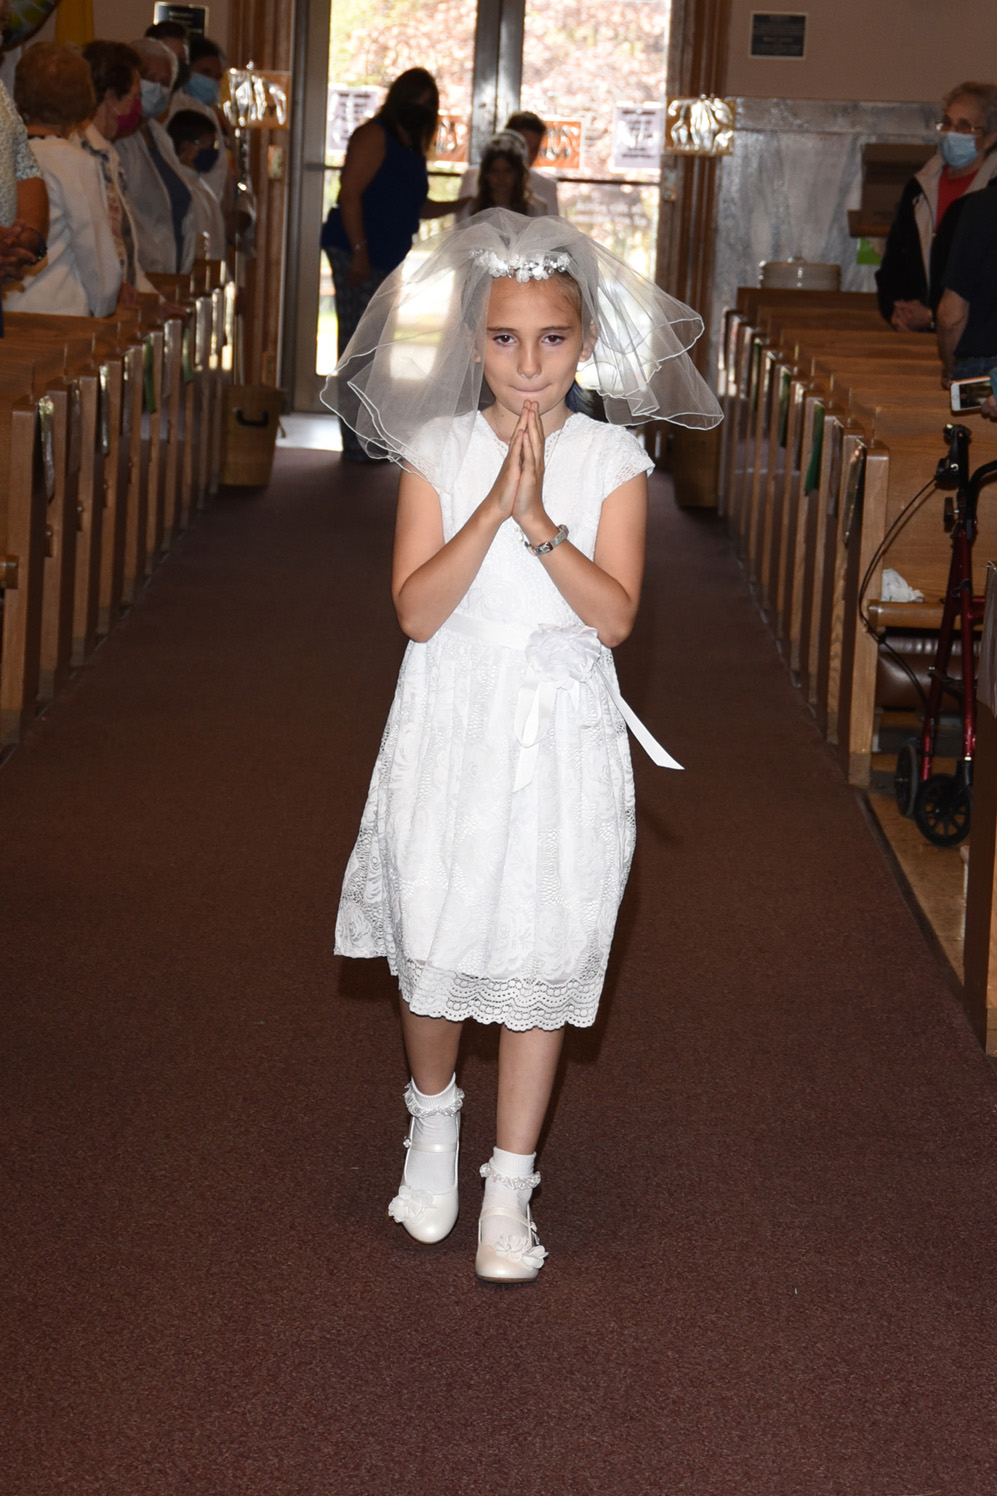 FIRST-COMMUNION-MAY-15-2021-10011056